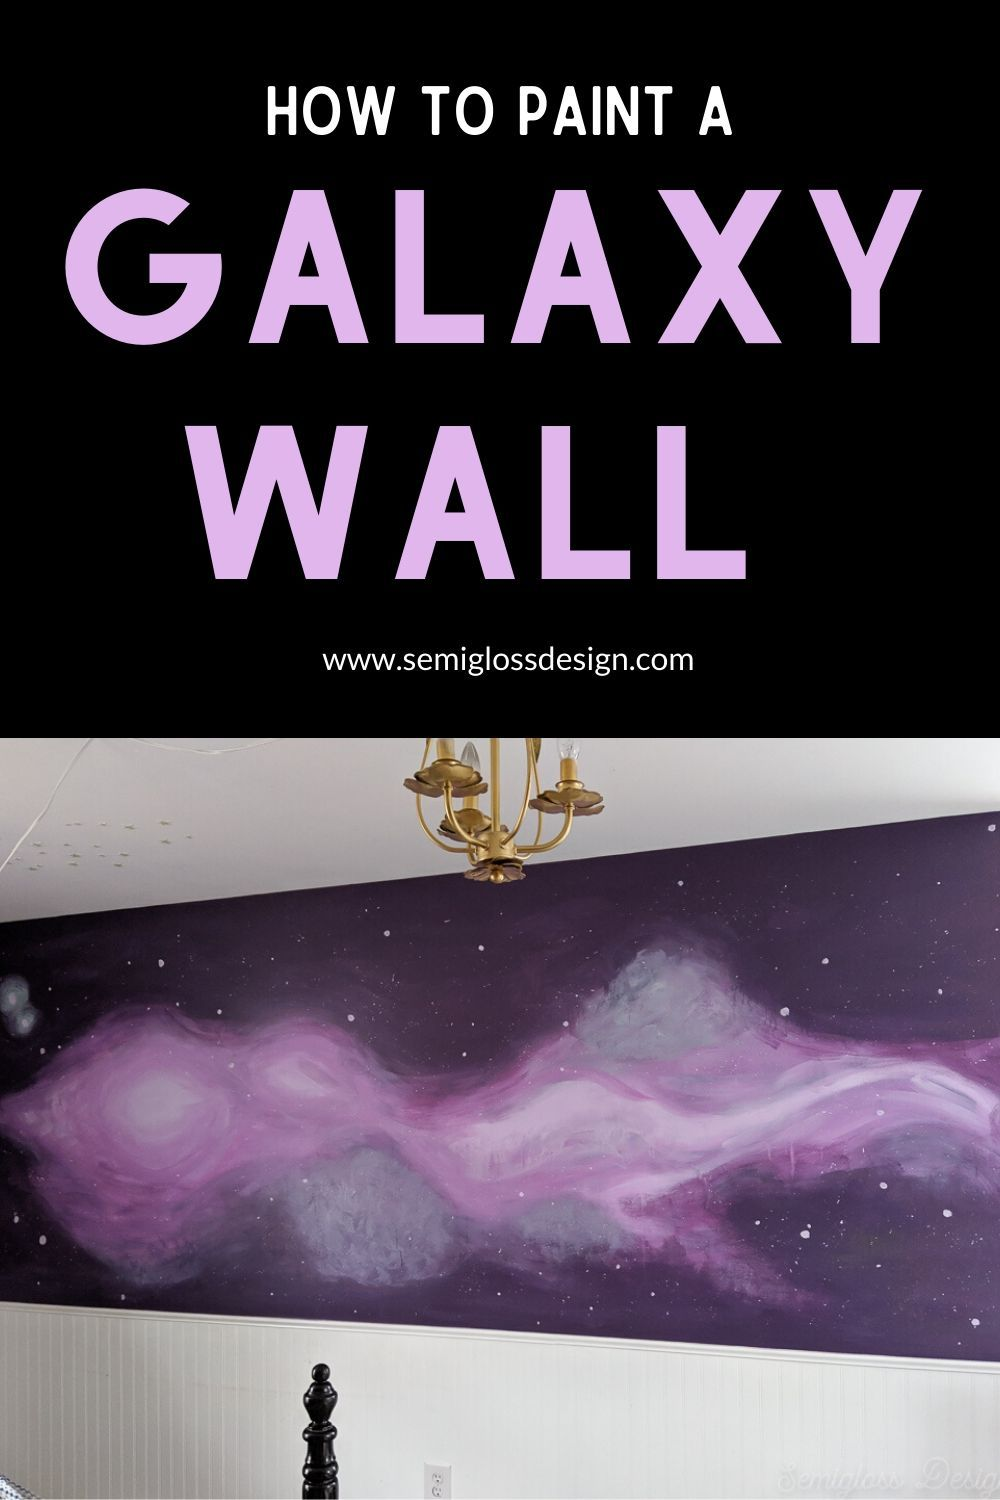 How To Paint A Diy Galaxy Wall Mural Space Painting Murals